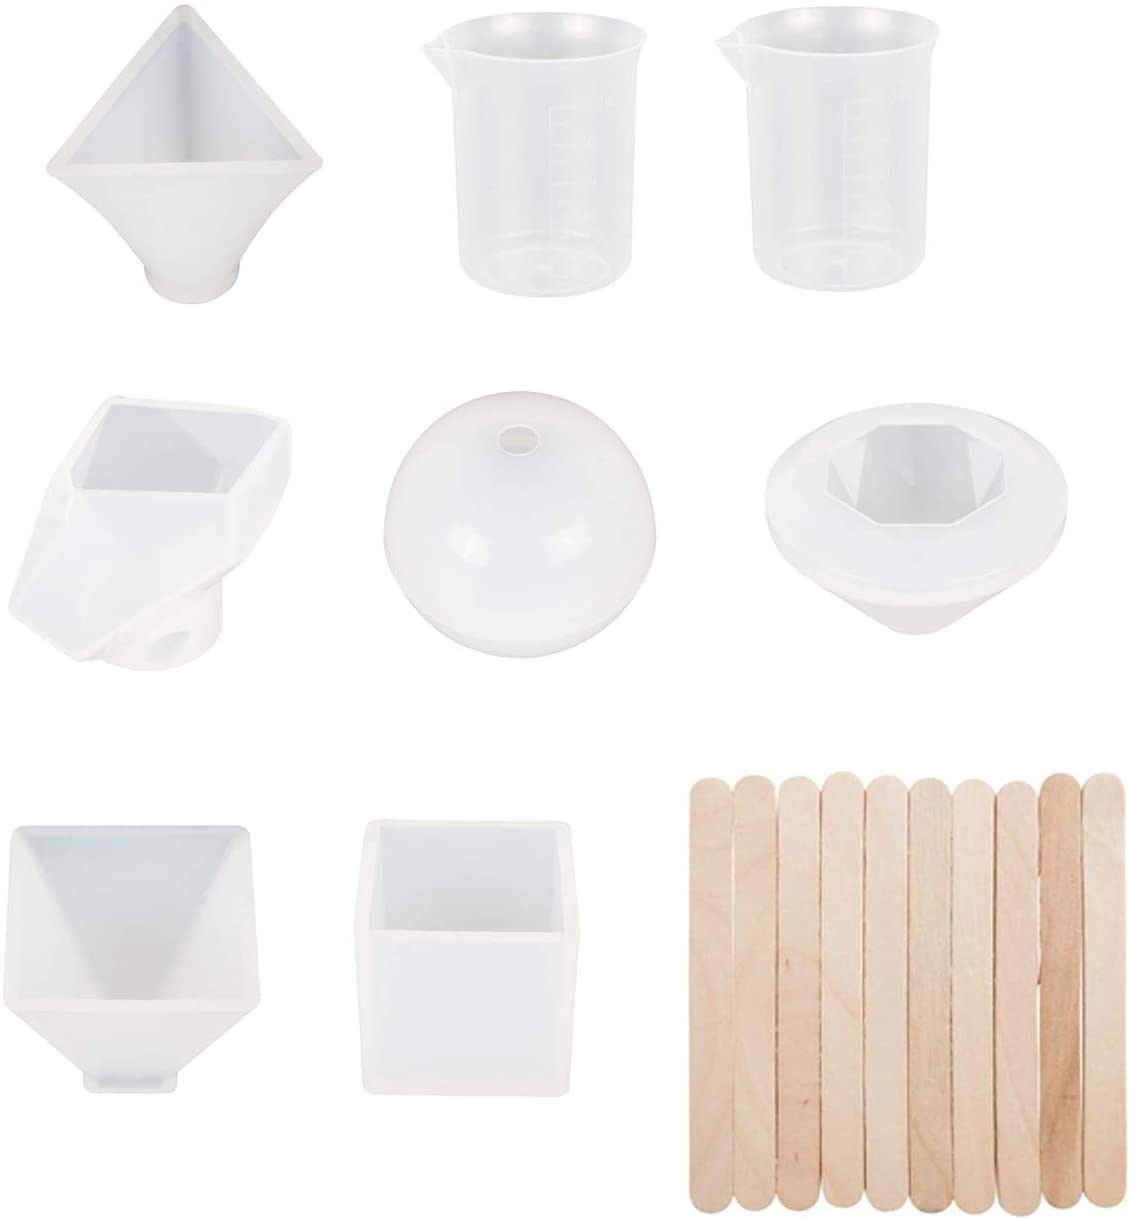 YXMxxm Silicone Resin Molds with 100 Screw Eye Pins for Making Including Pendant,Jewelry,Ashtray,Earring,Cube,Pyramid, Sphere Molds